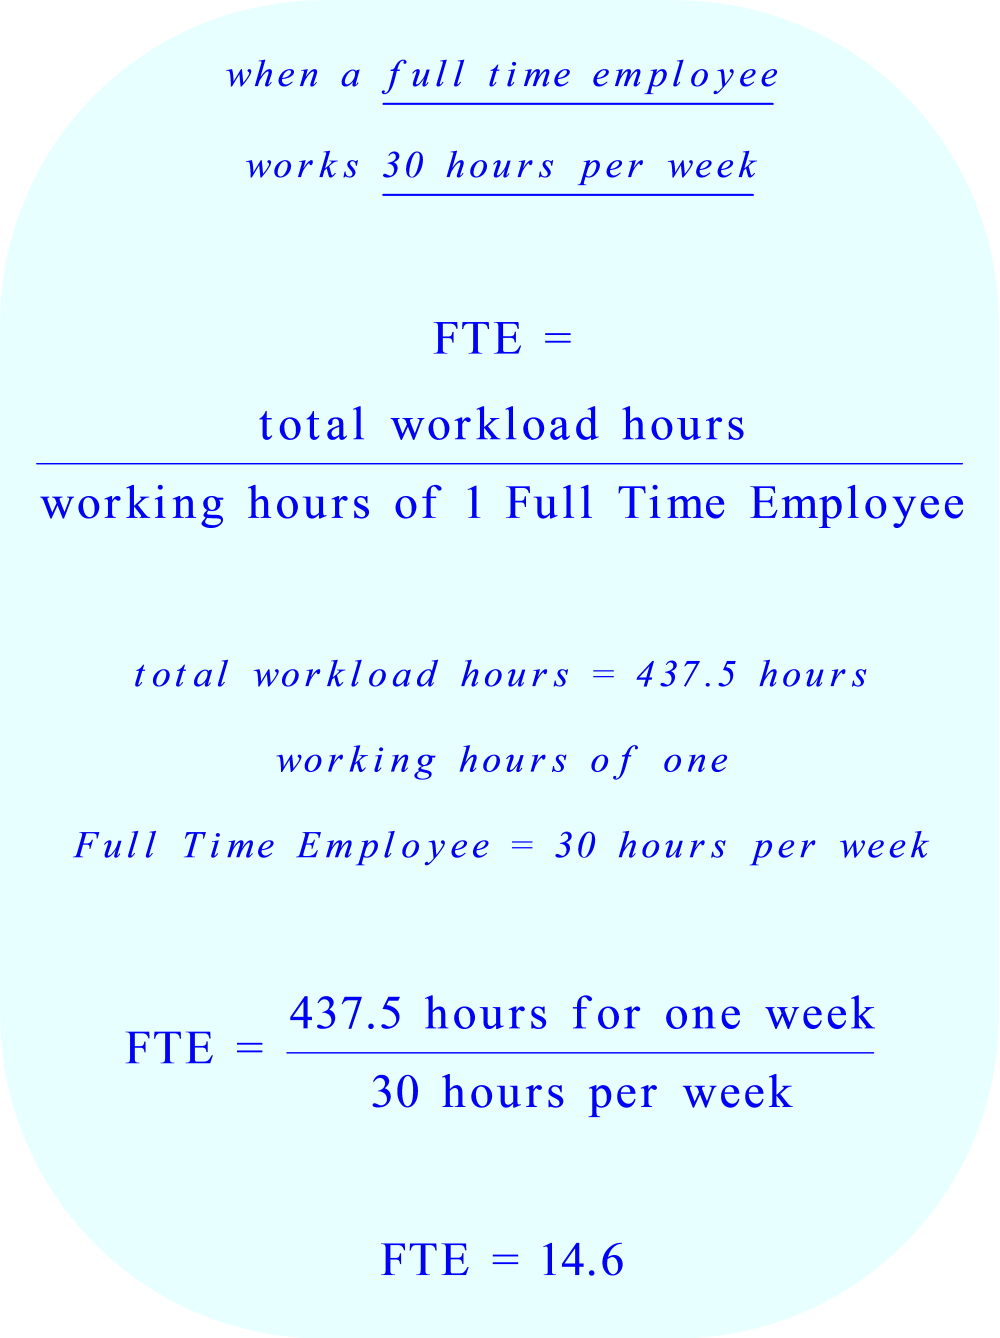 Calculation of FTE if  the definition of a full time employee is:  works 30 hours per week 